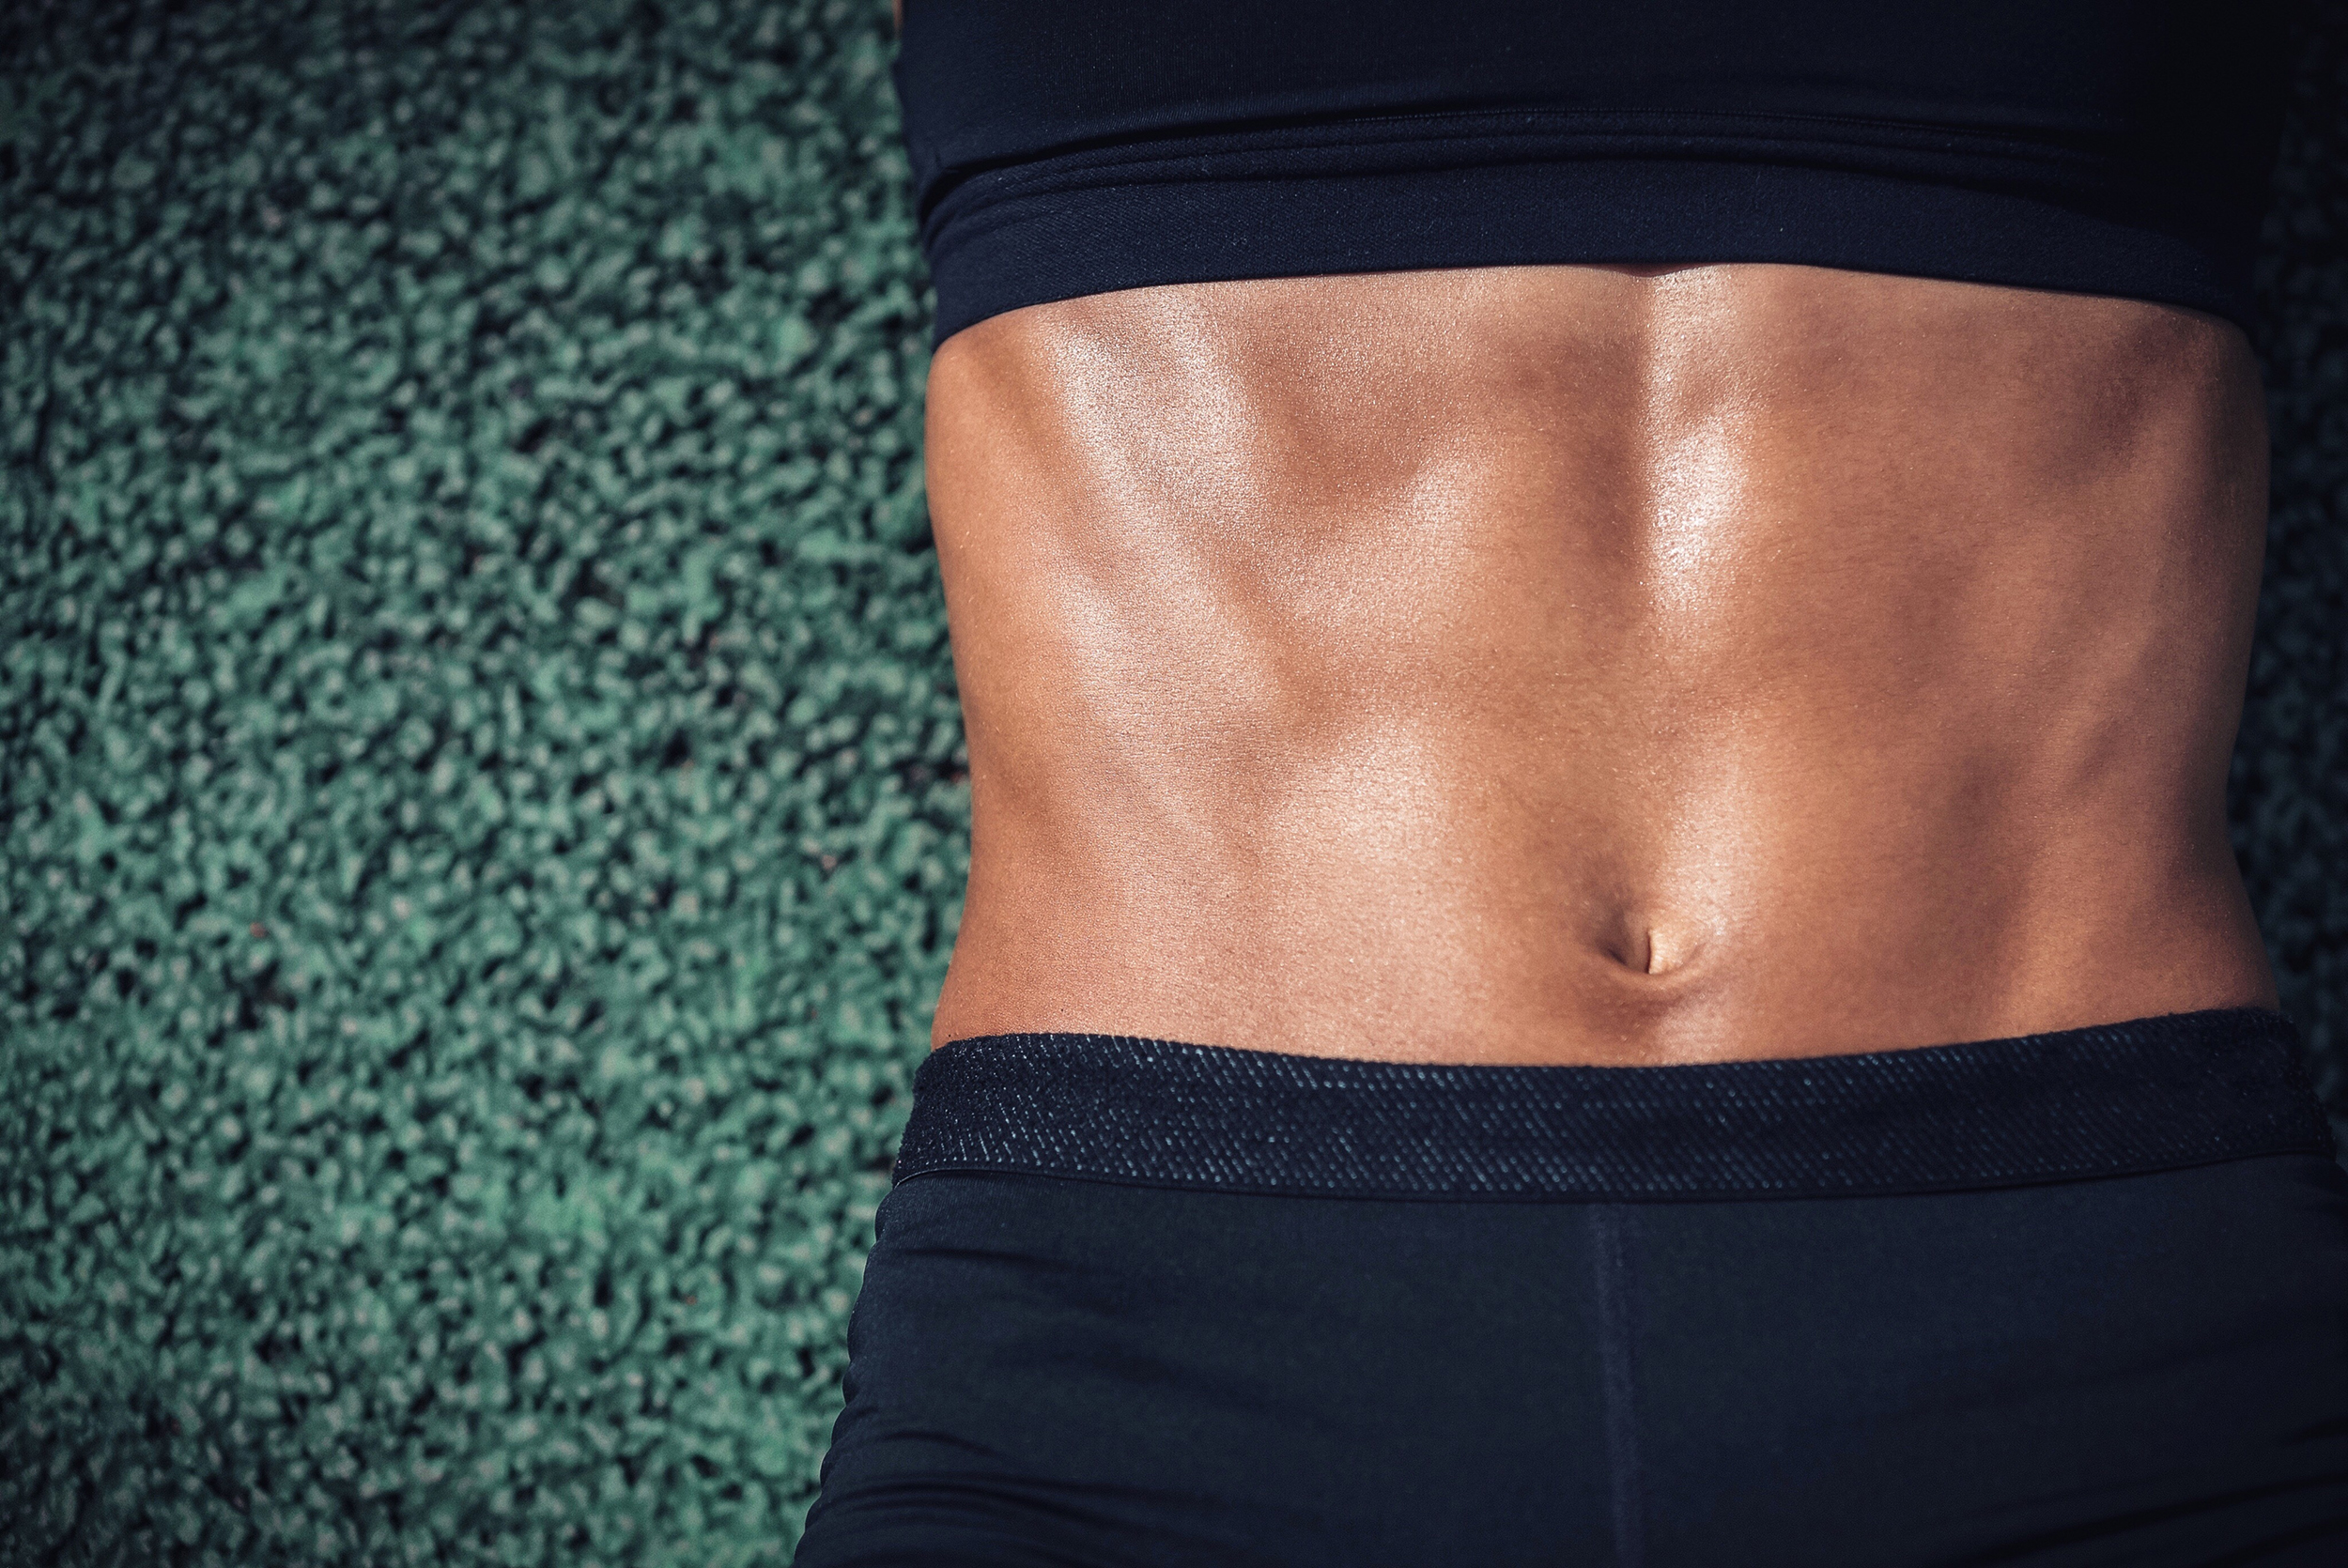 A 5 Minute Ab Workout To Tone Your Midsection